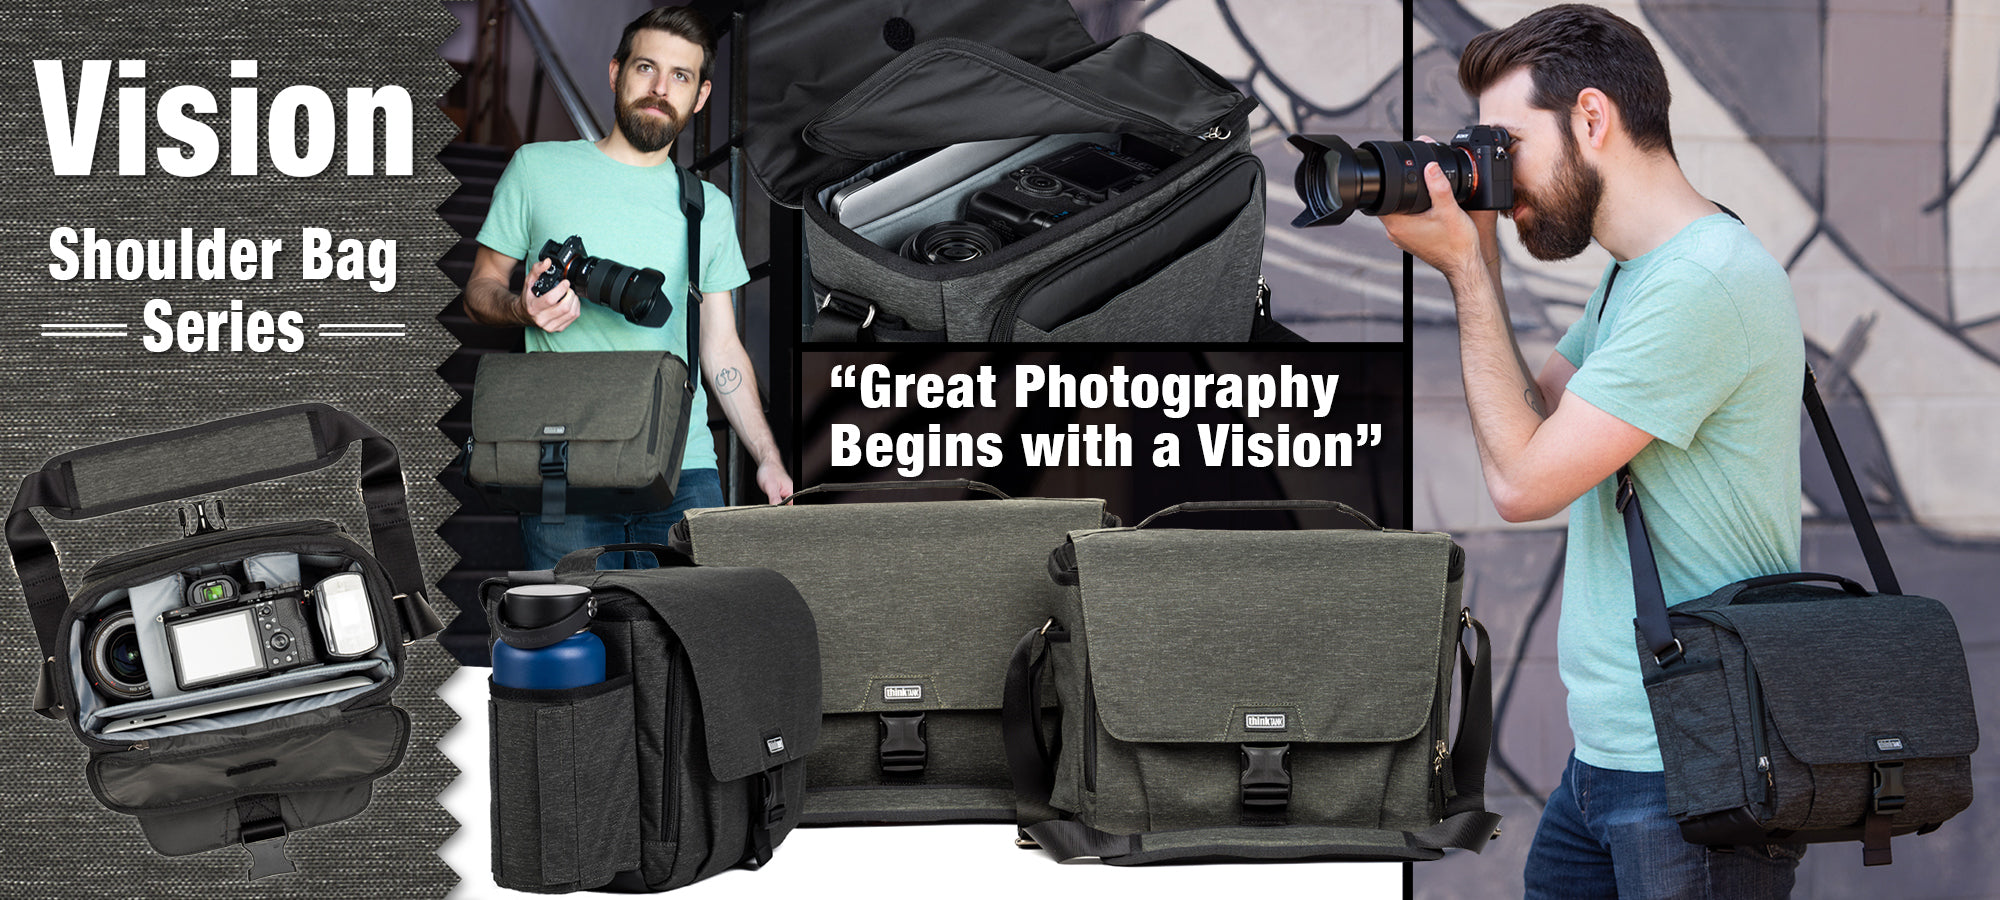 Sized for professional lenses, the Vision Shoulder Bag Series is designed not only for capacity but also for security.